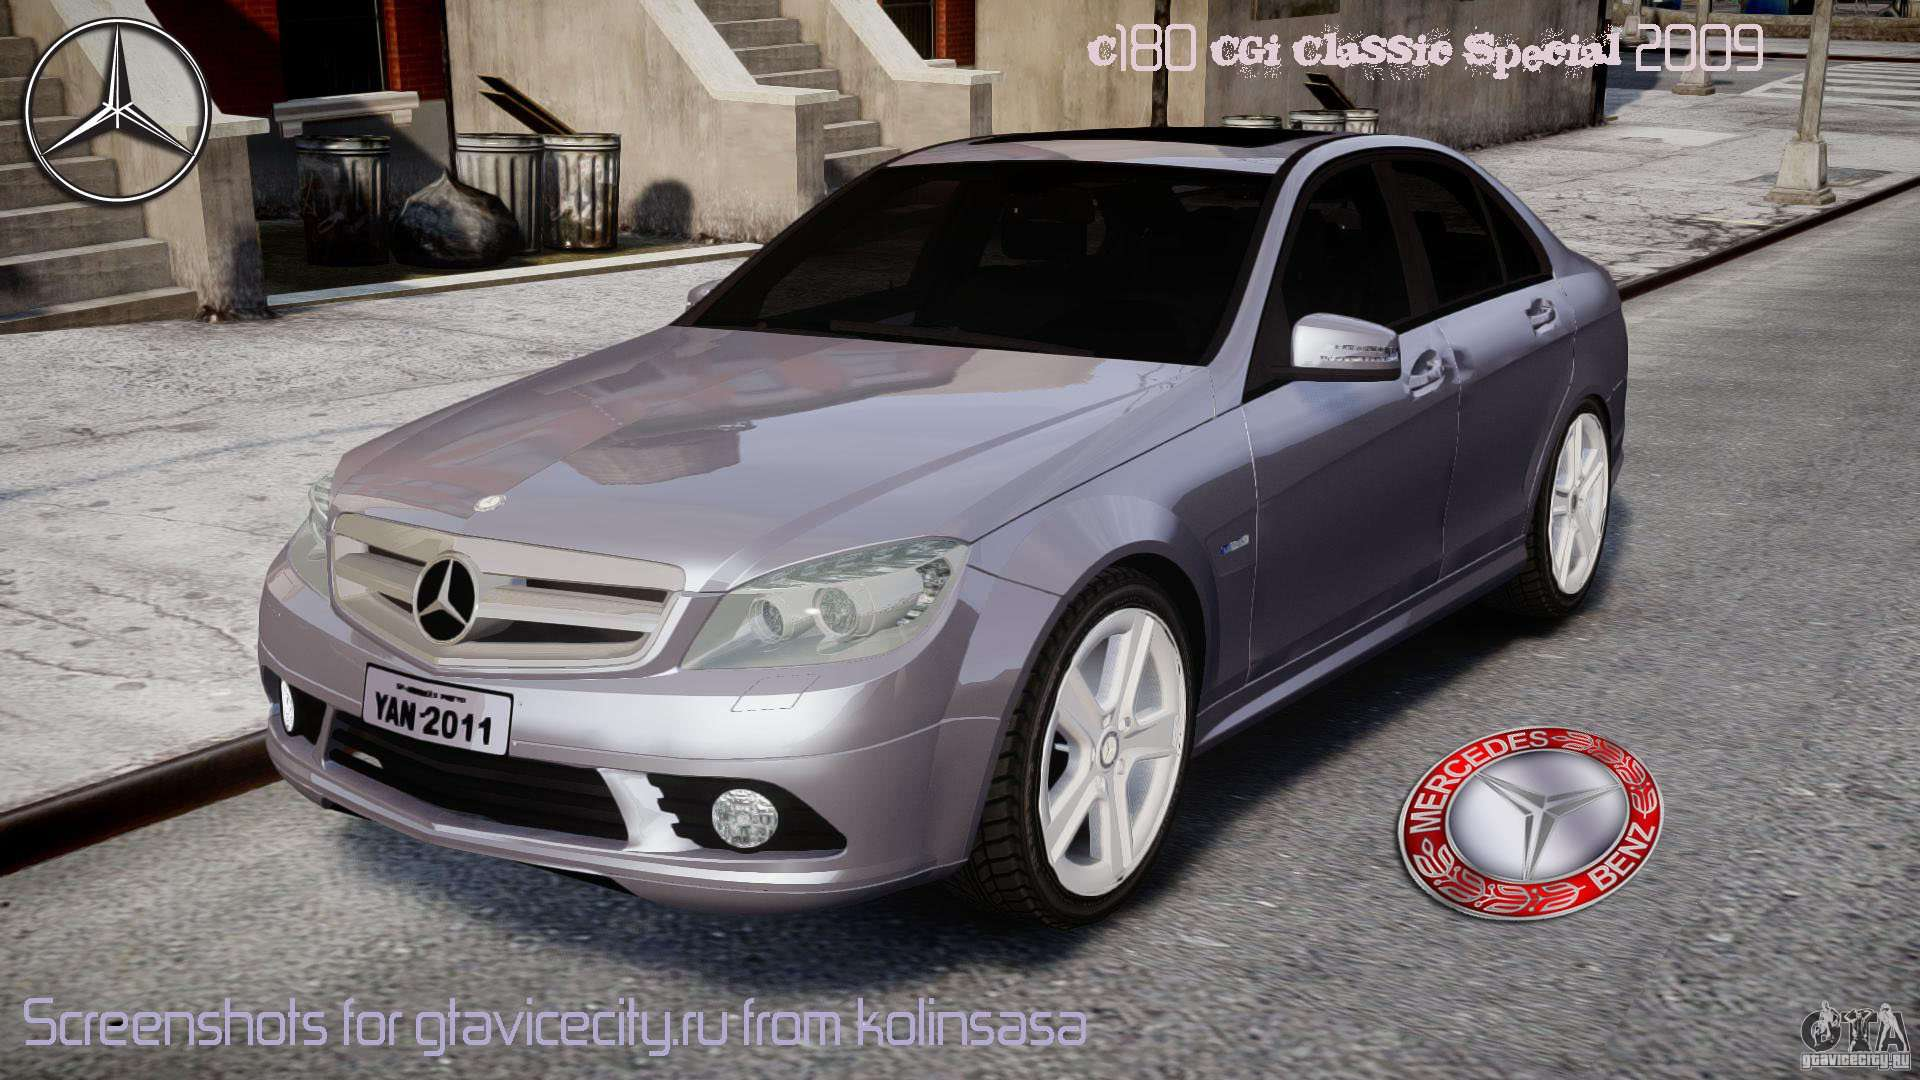 Mercedes benz c180 cgi classic special 2009 for gta 4 for C180 mercedes benz